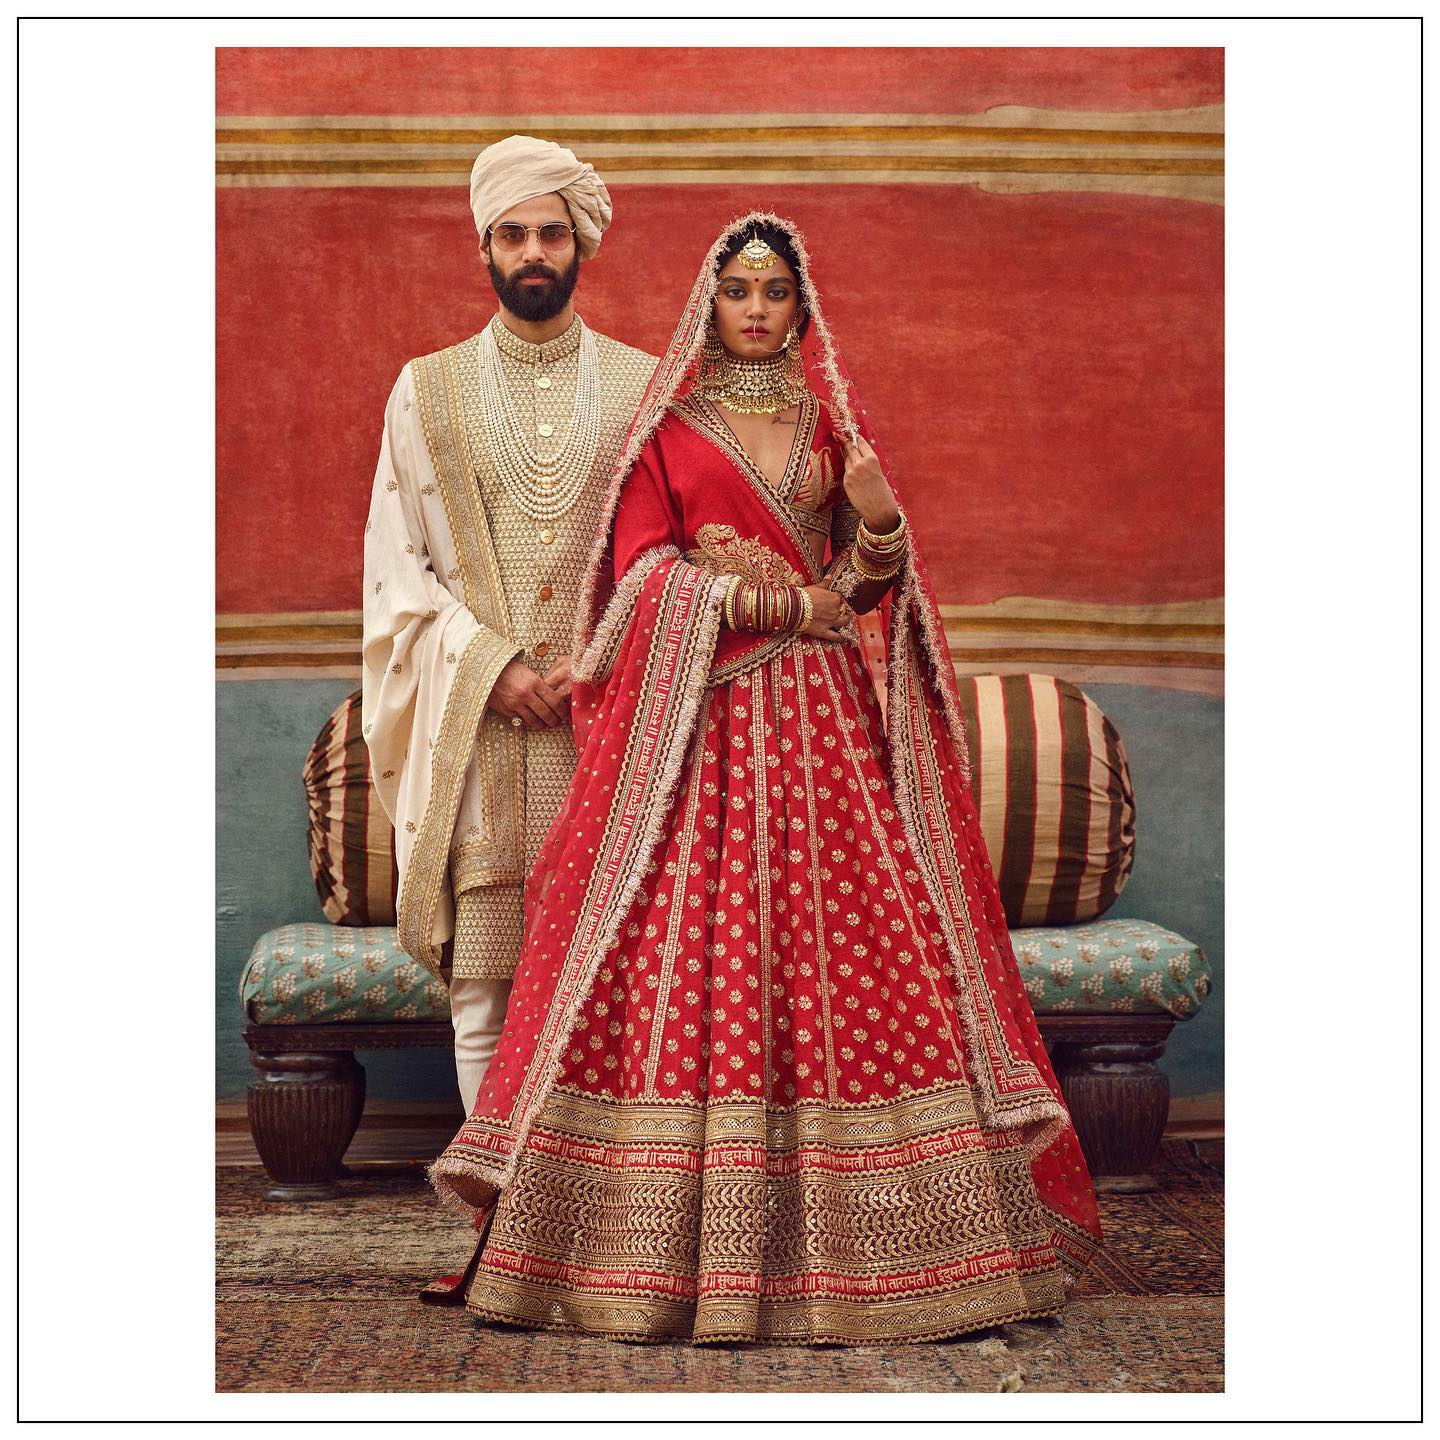 Stunning Red Sabyasachi Bridal lehenga set. The Sabyasachi 2021 Collection.  Clothing and jewellery Sabyasachi jewelry.  For all product related queries please email at customerservice@sabyasachi.com or contact  retail stores directly. 2021-07-23